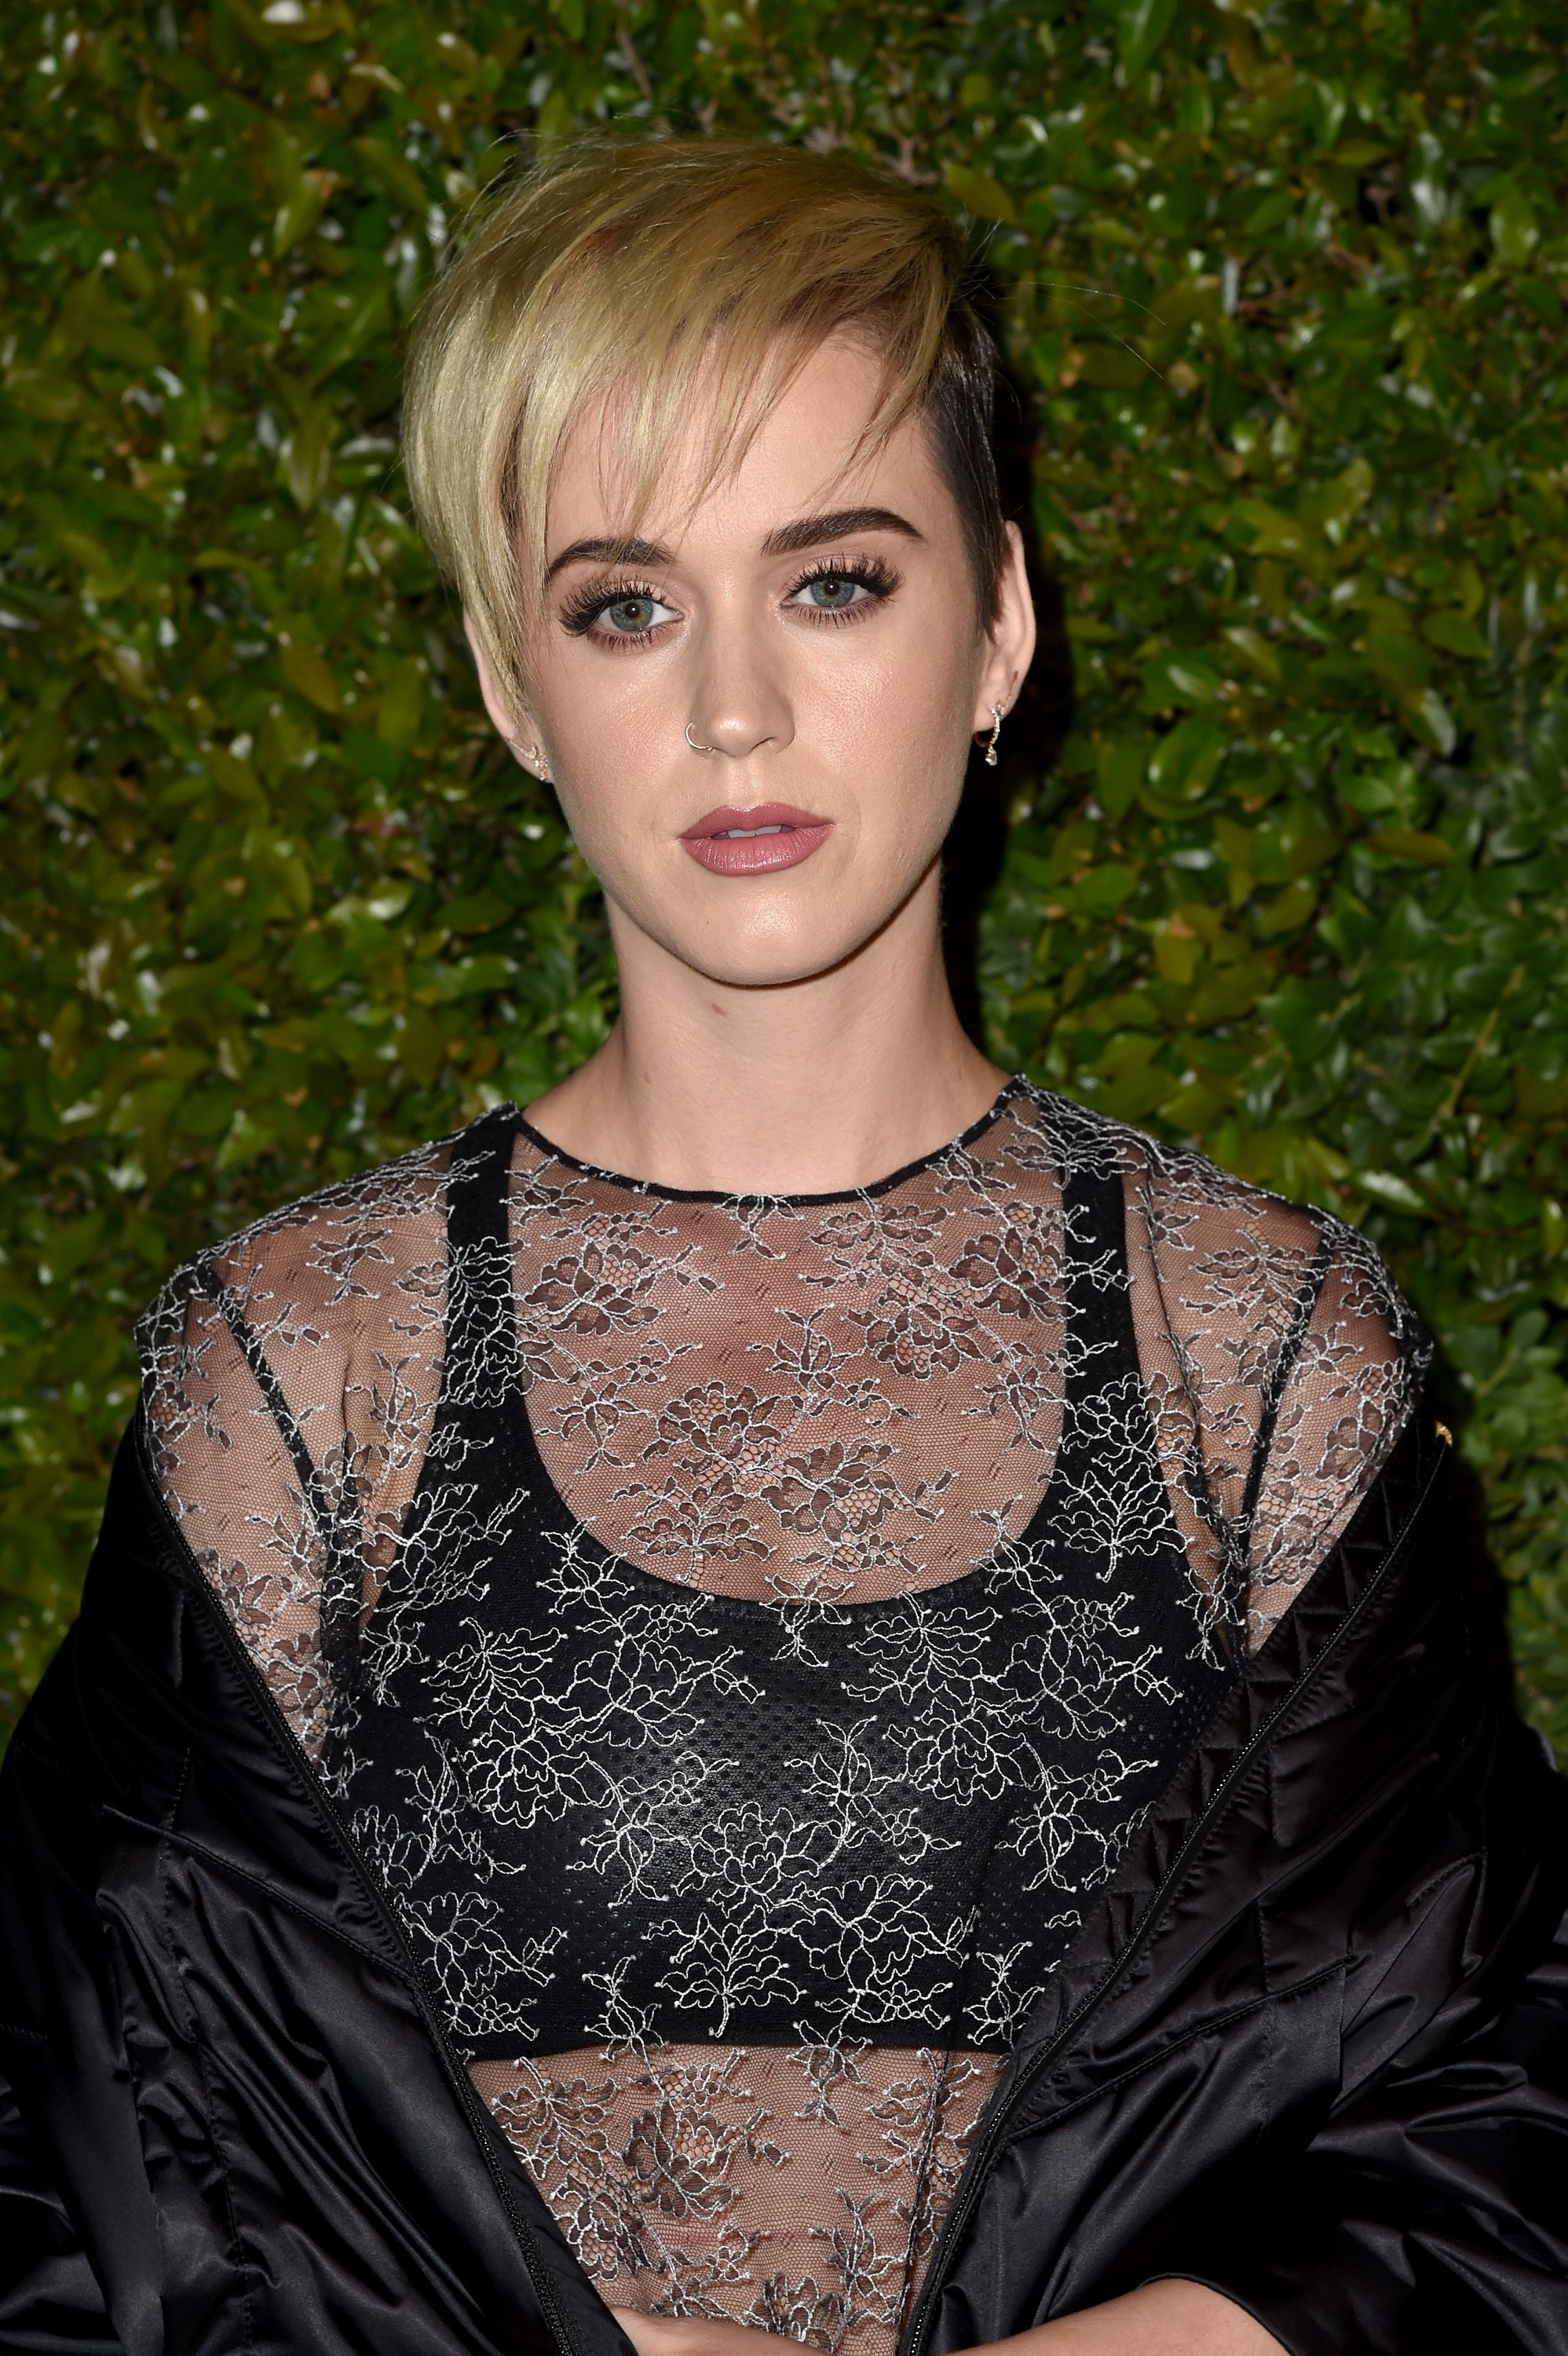 15 Best Short Hairstyles 2018 Easy Bob And Pixie Cut Styles For Girls